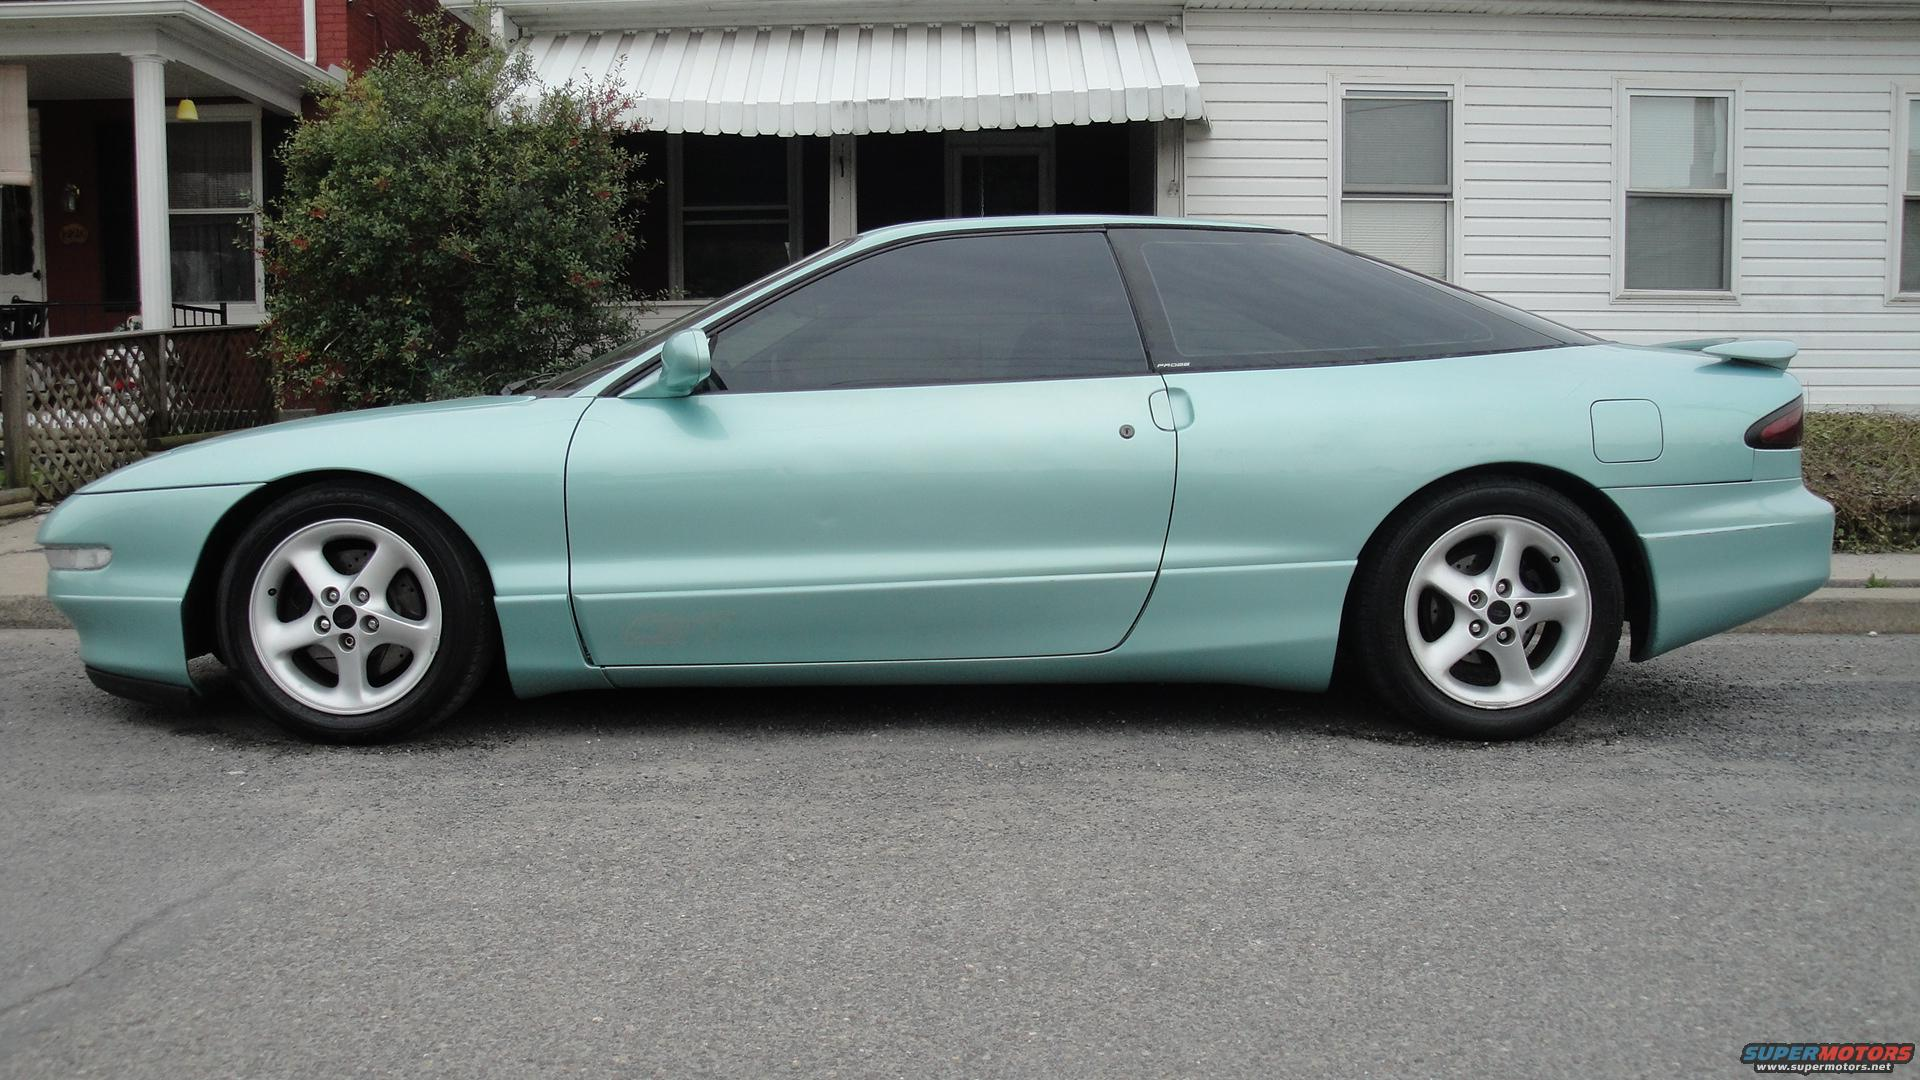 1995 Ford Probe 95 Probe Gt picture | SuperMotors.net